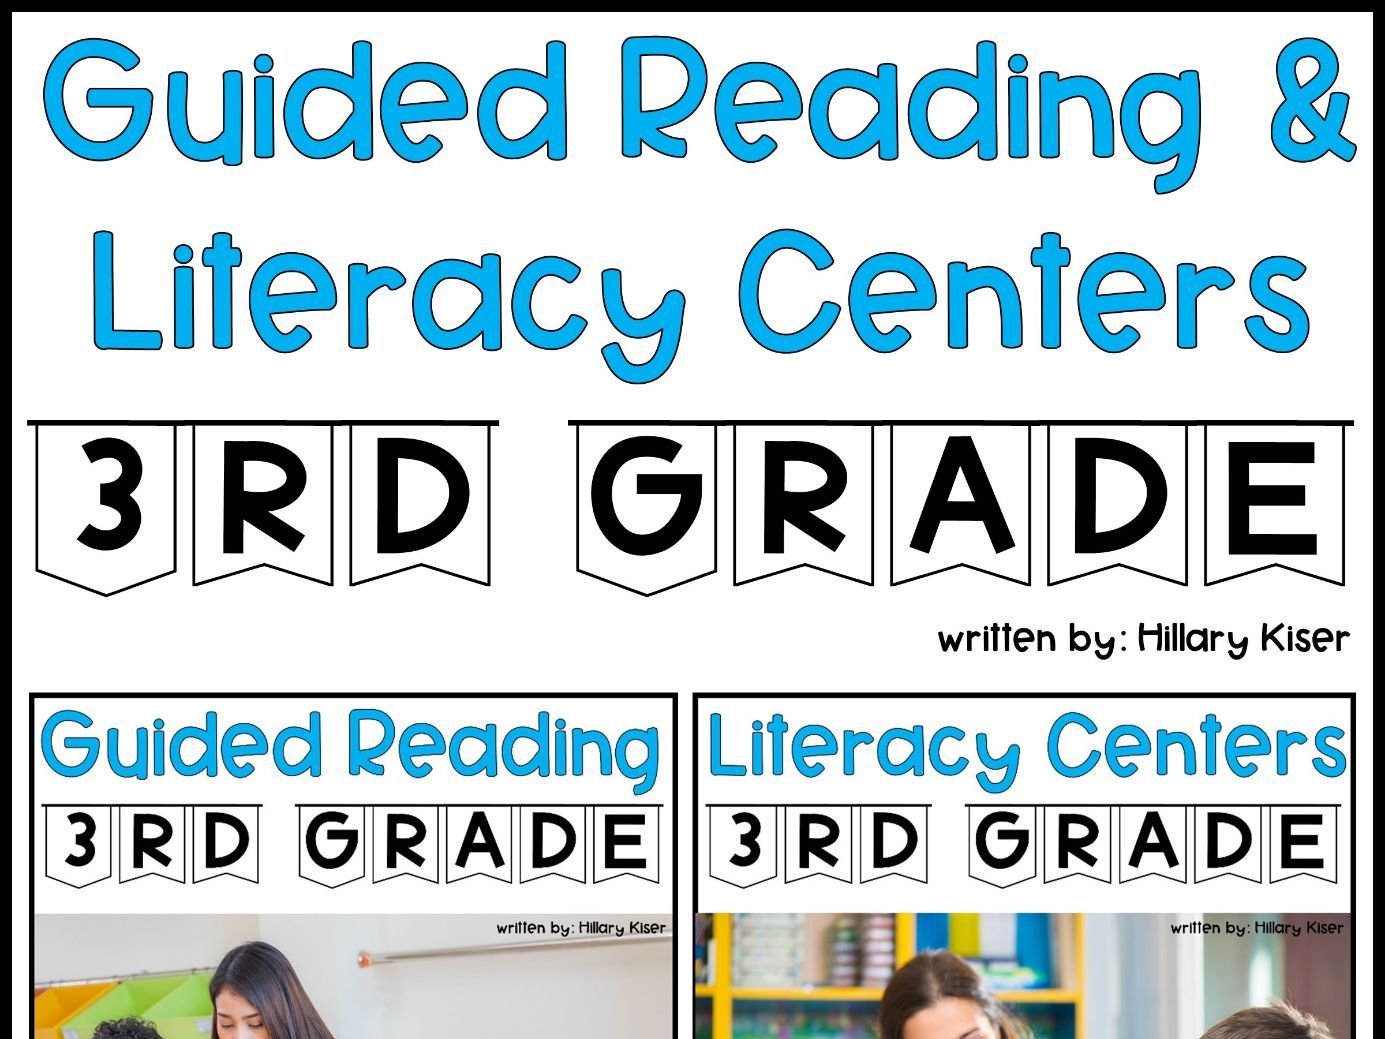 Guided Reading and Literacy Centers: 3rd Grade